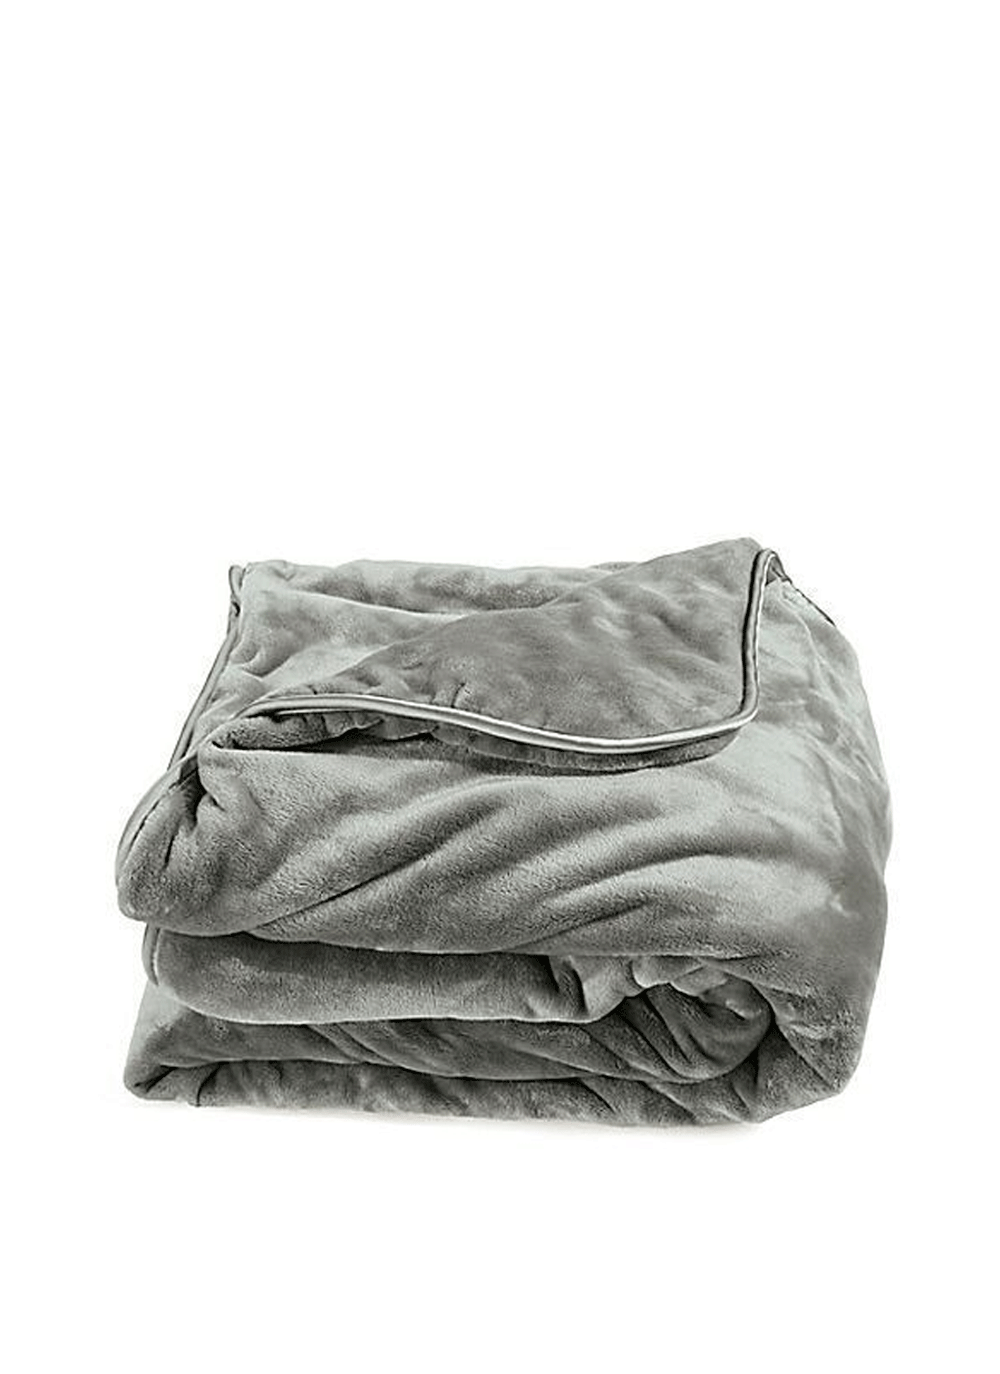 5 Best Weighted Blankets Per Expert Reviews Top Rated